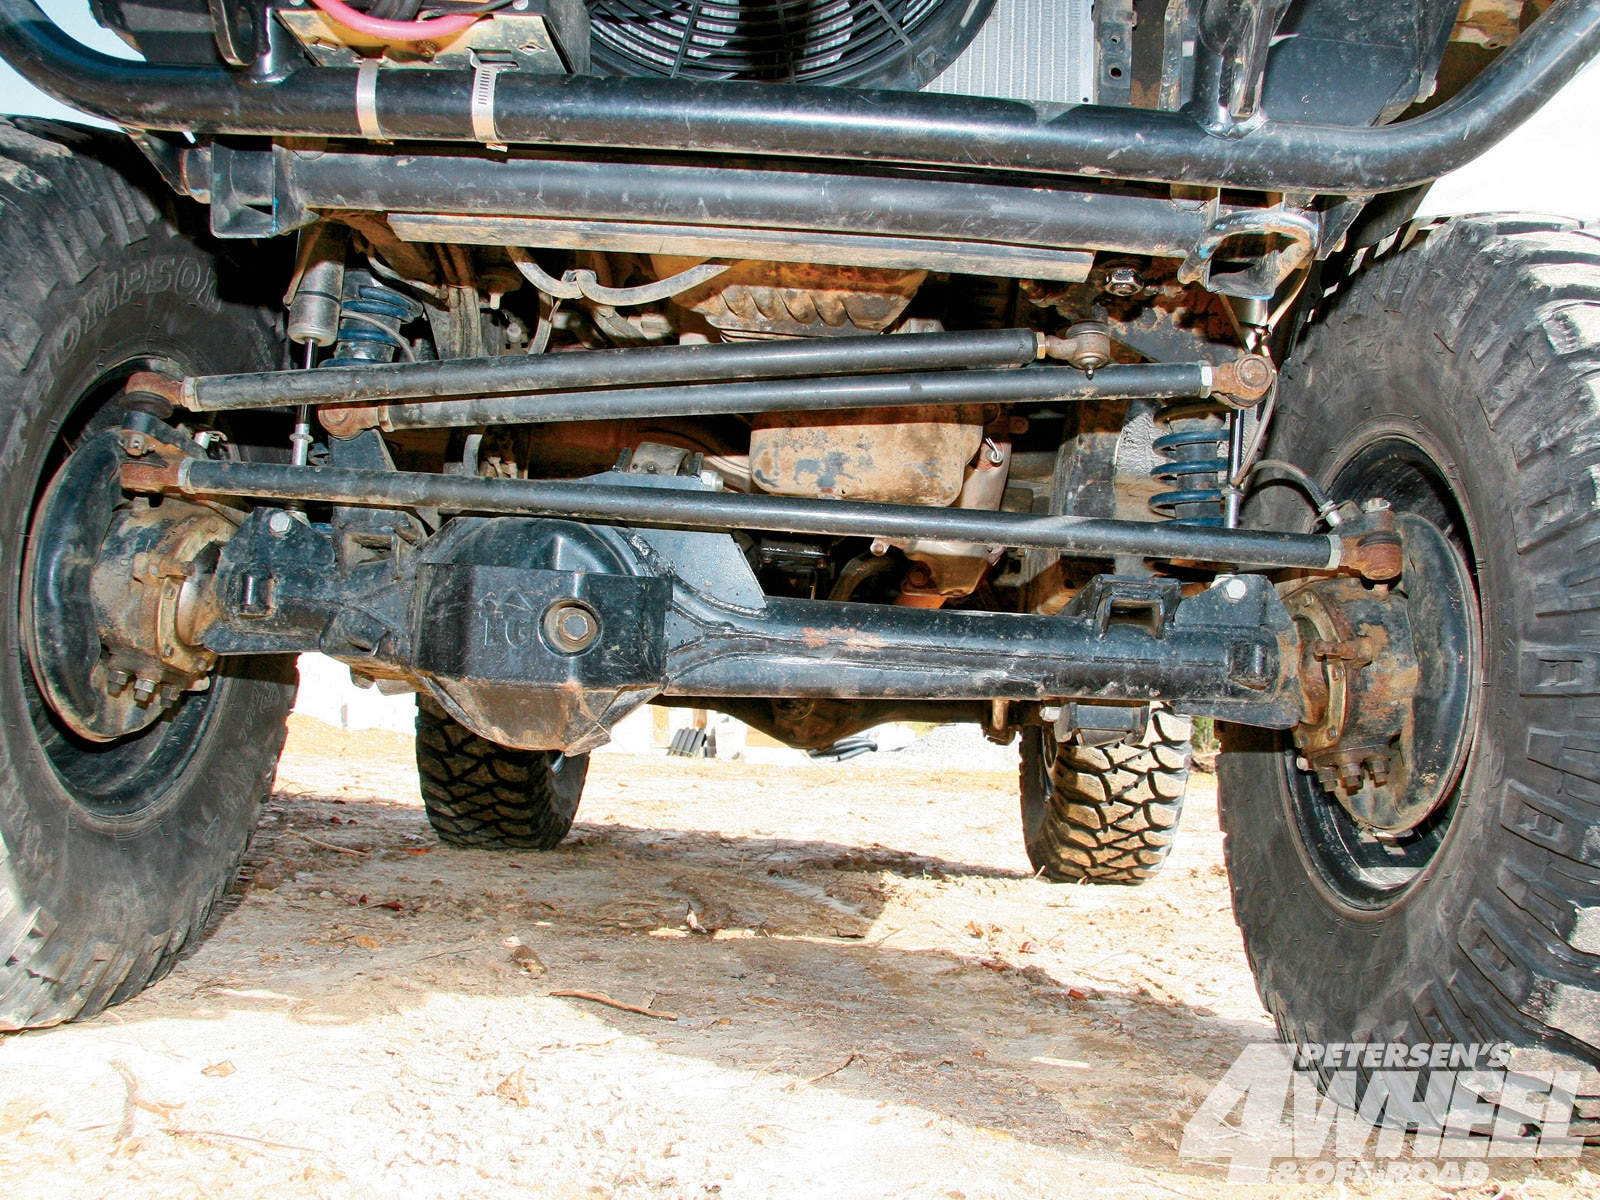 131 1008 01+1992 geo tracker+independent front suspension